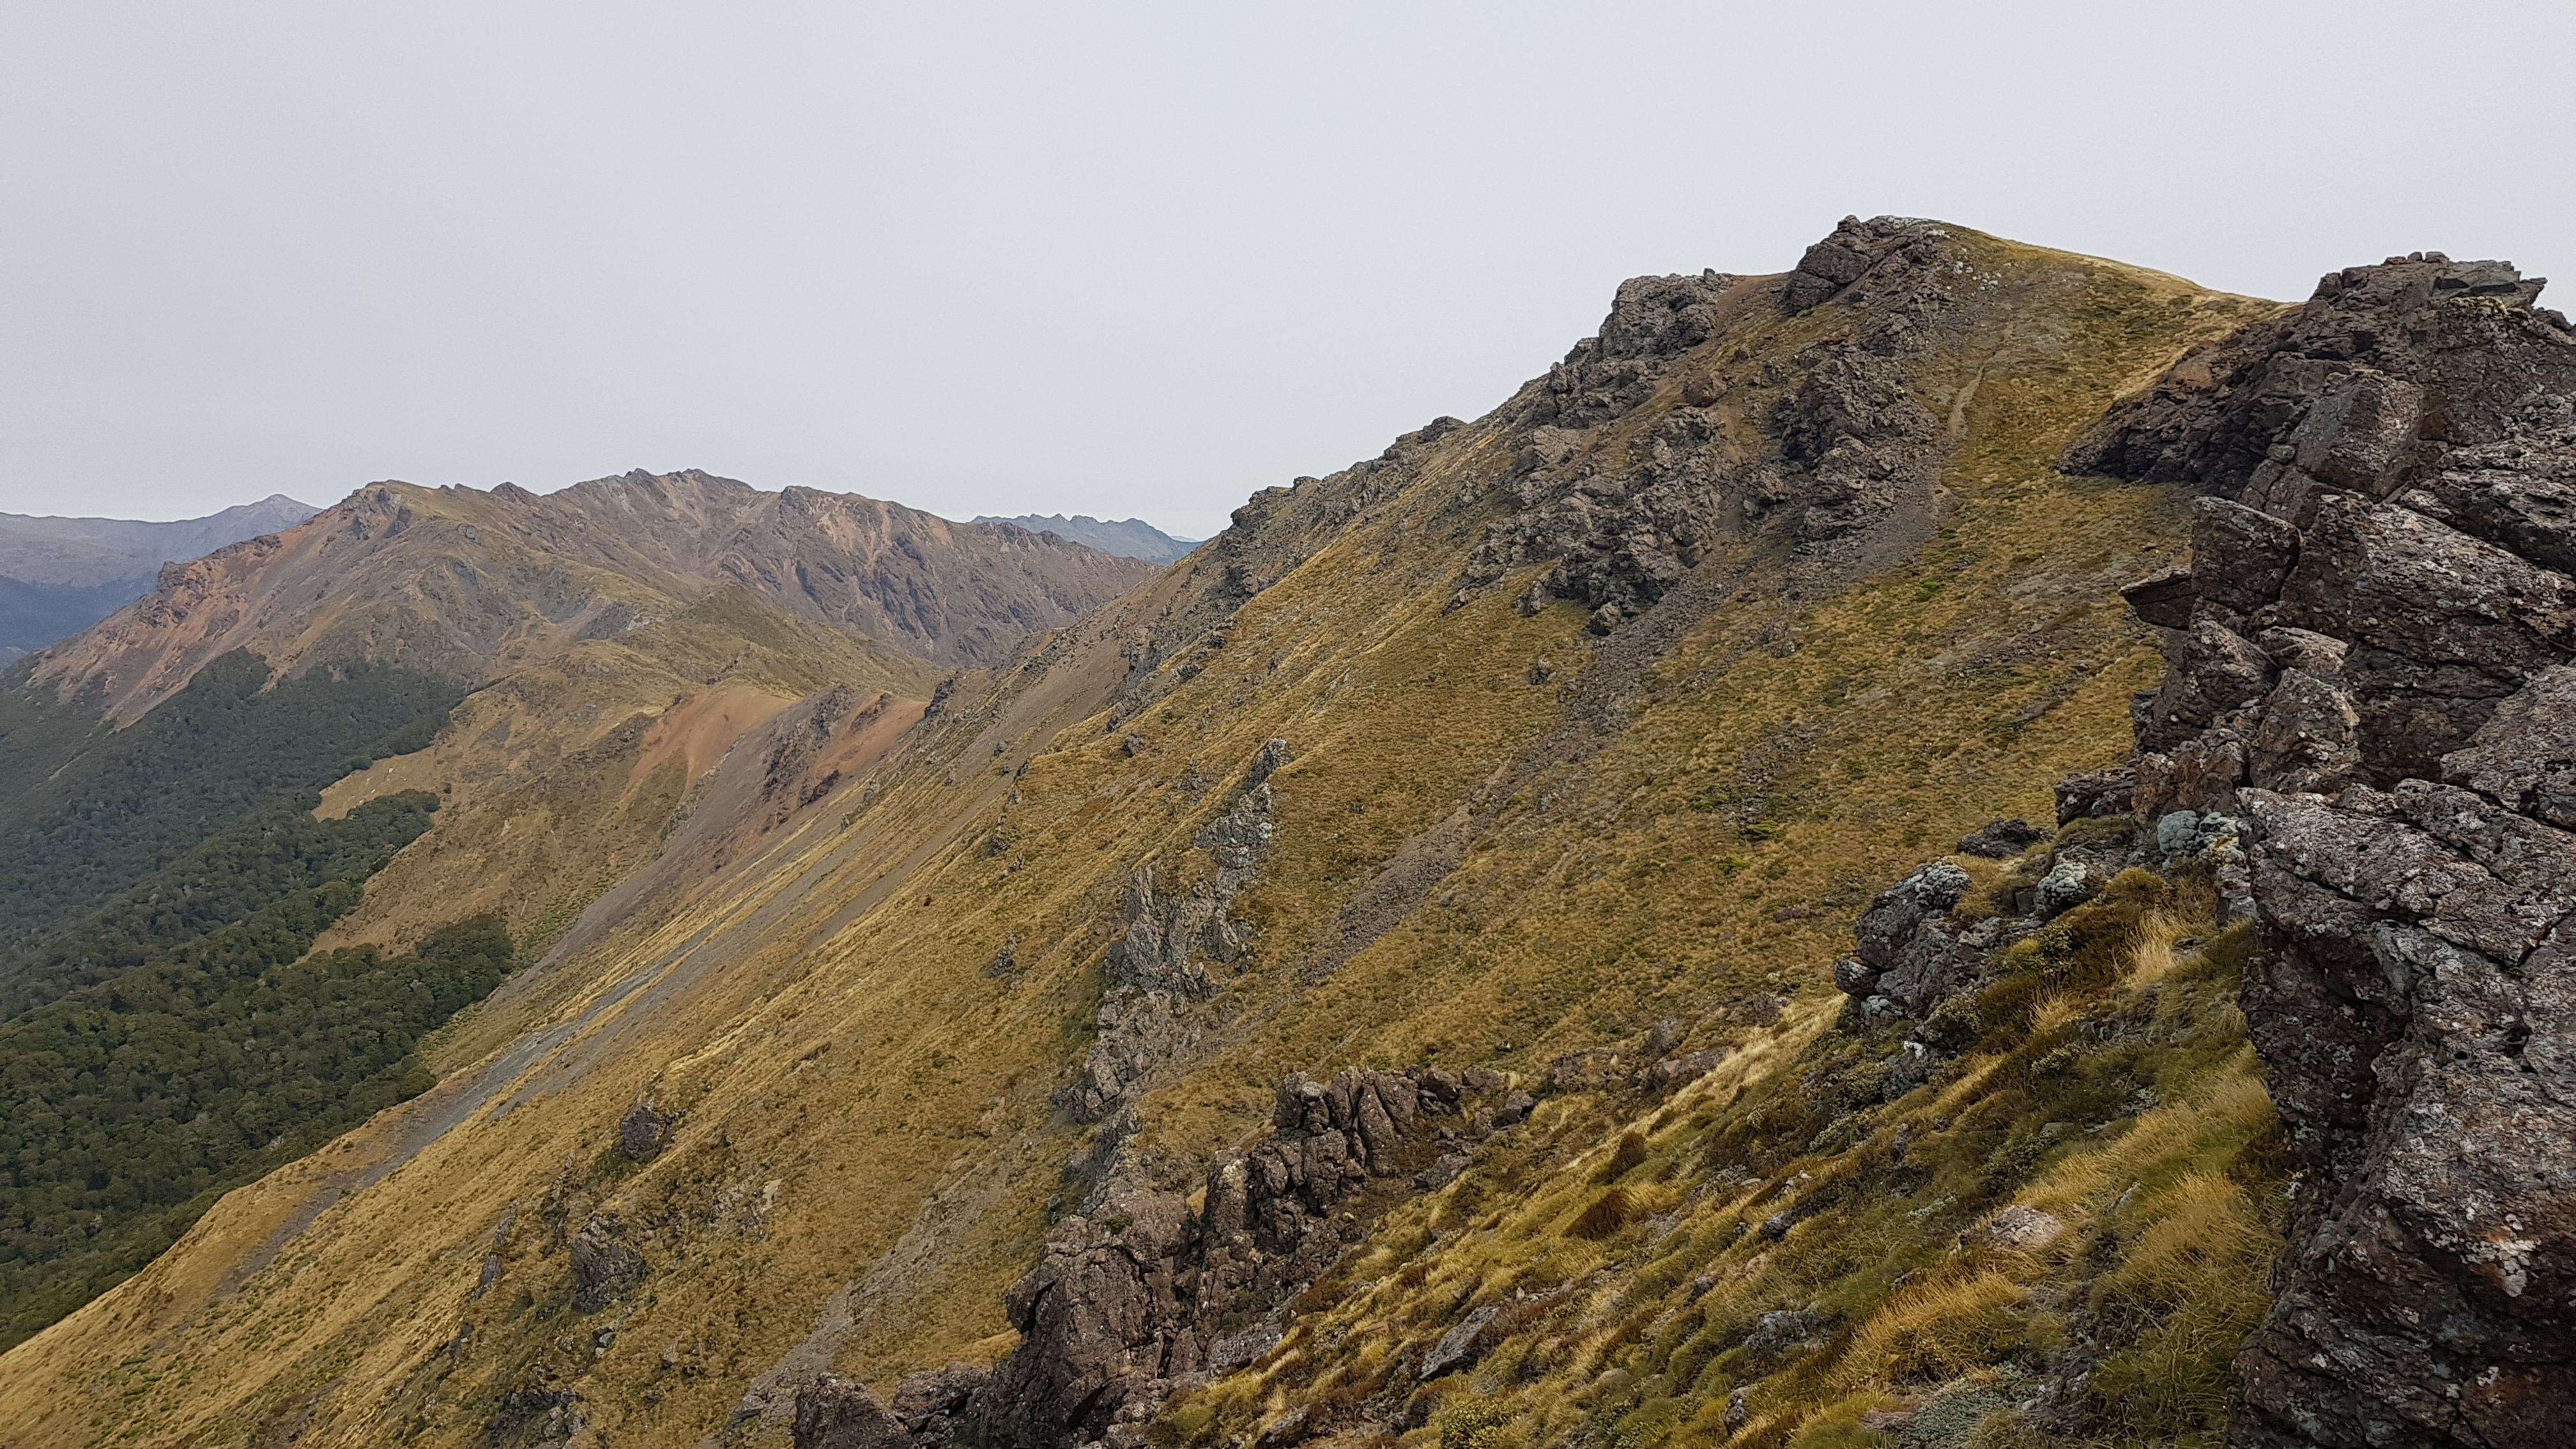 Traversing some of the rocky outcrops along the ridge of the Lockett Range